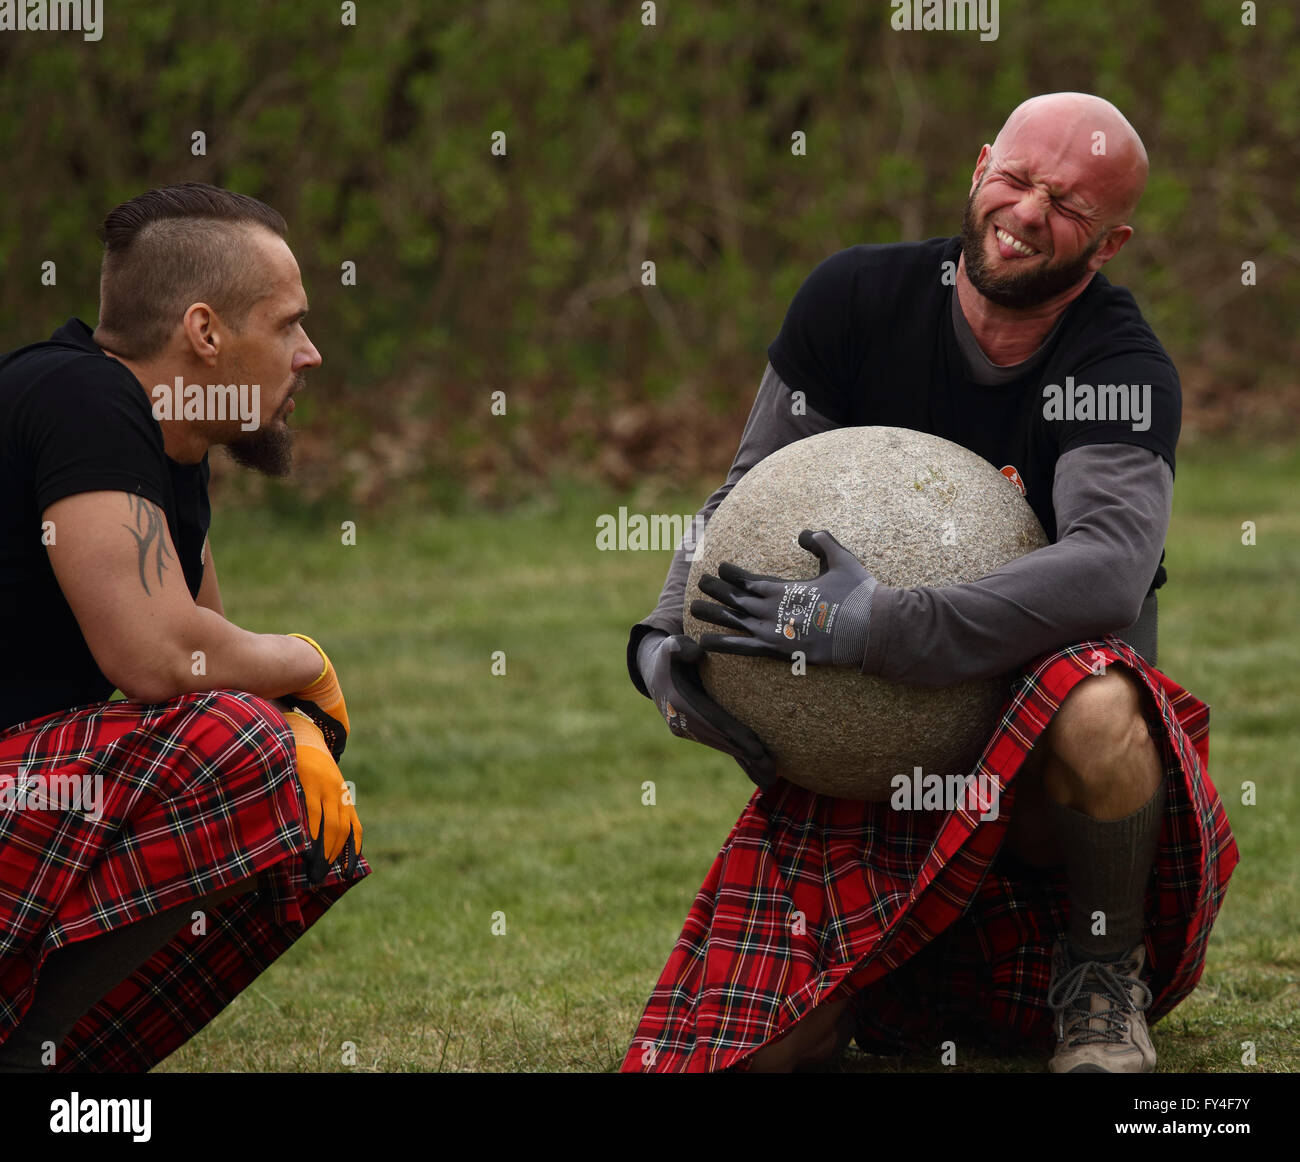 competitor attempting to lift 90 kg stone weight whilst a team mate